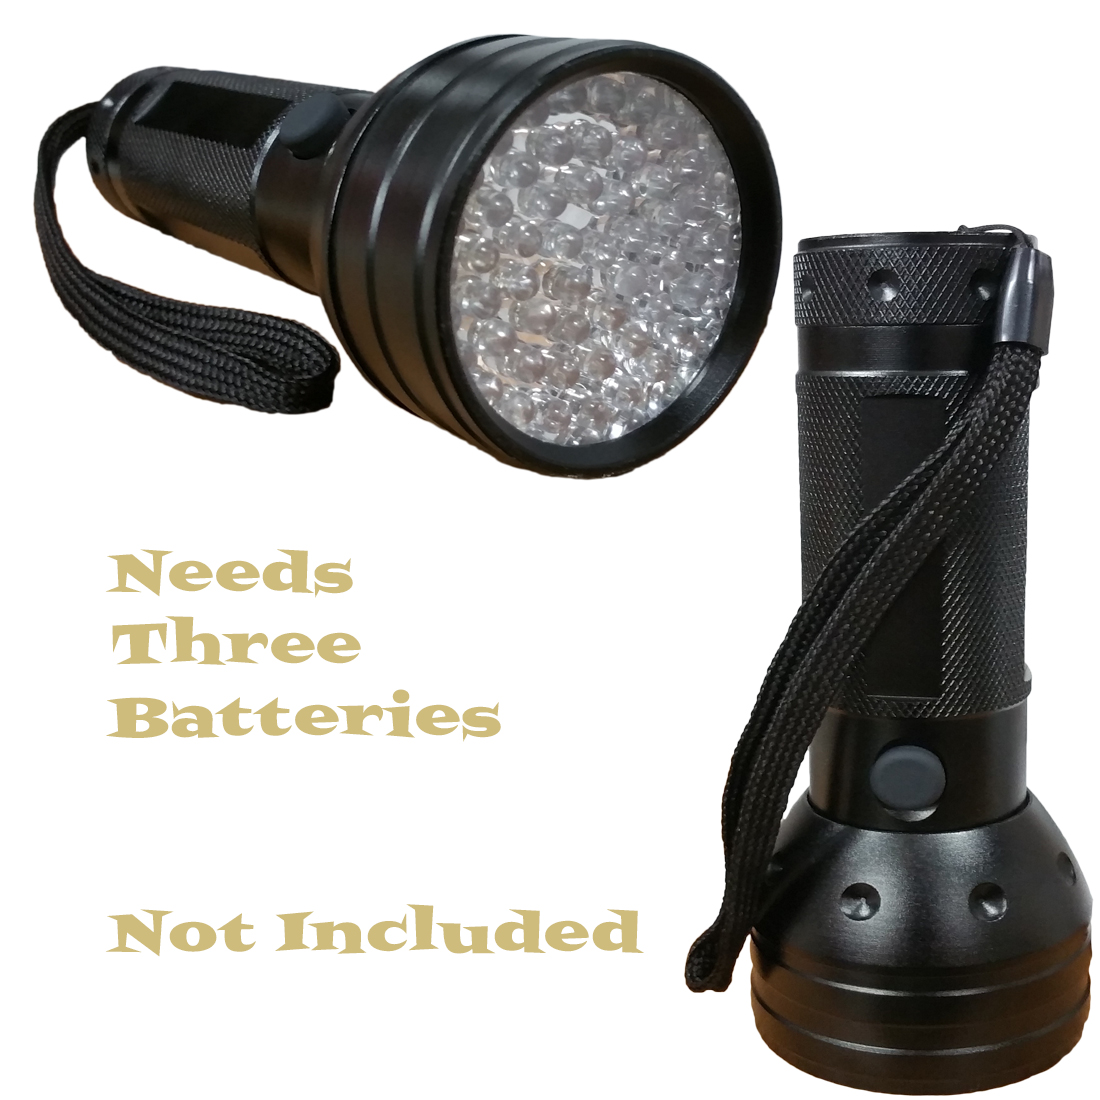 Black UV Flashlight